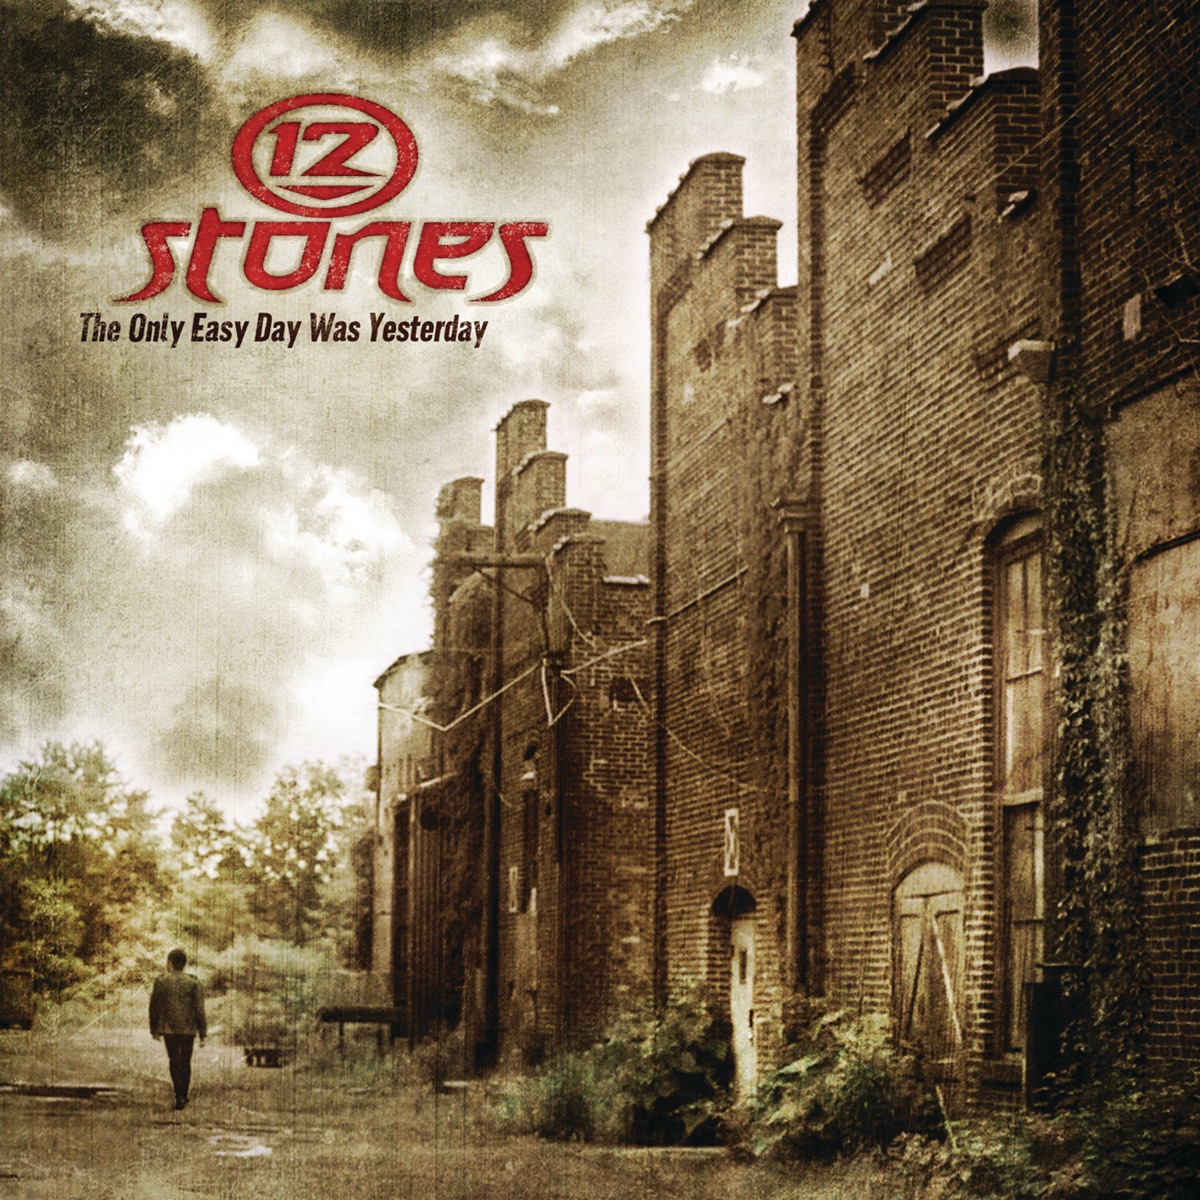 The Only Easy Day Was Yesterday EP 12 Stones CD cover